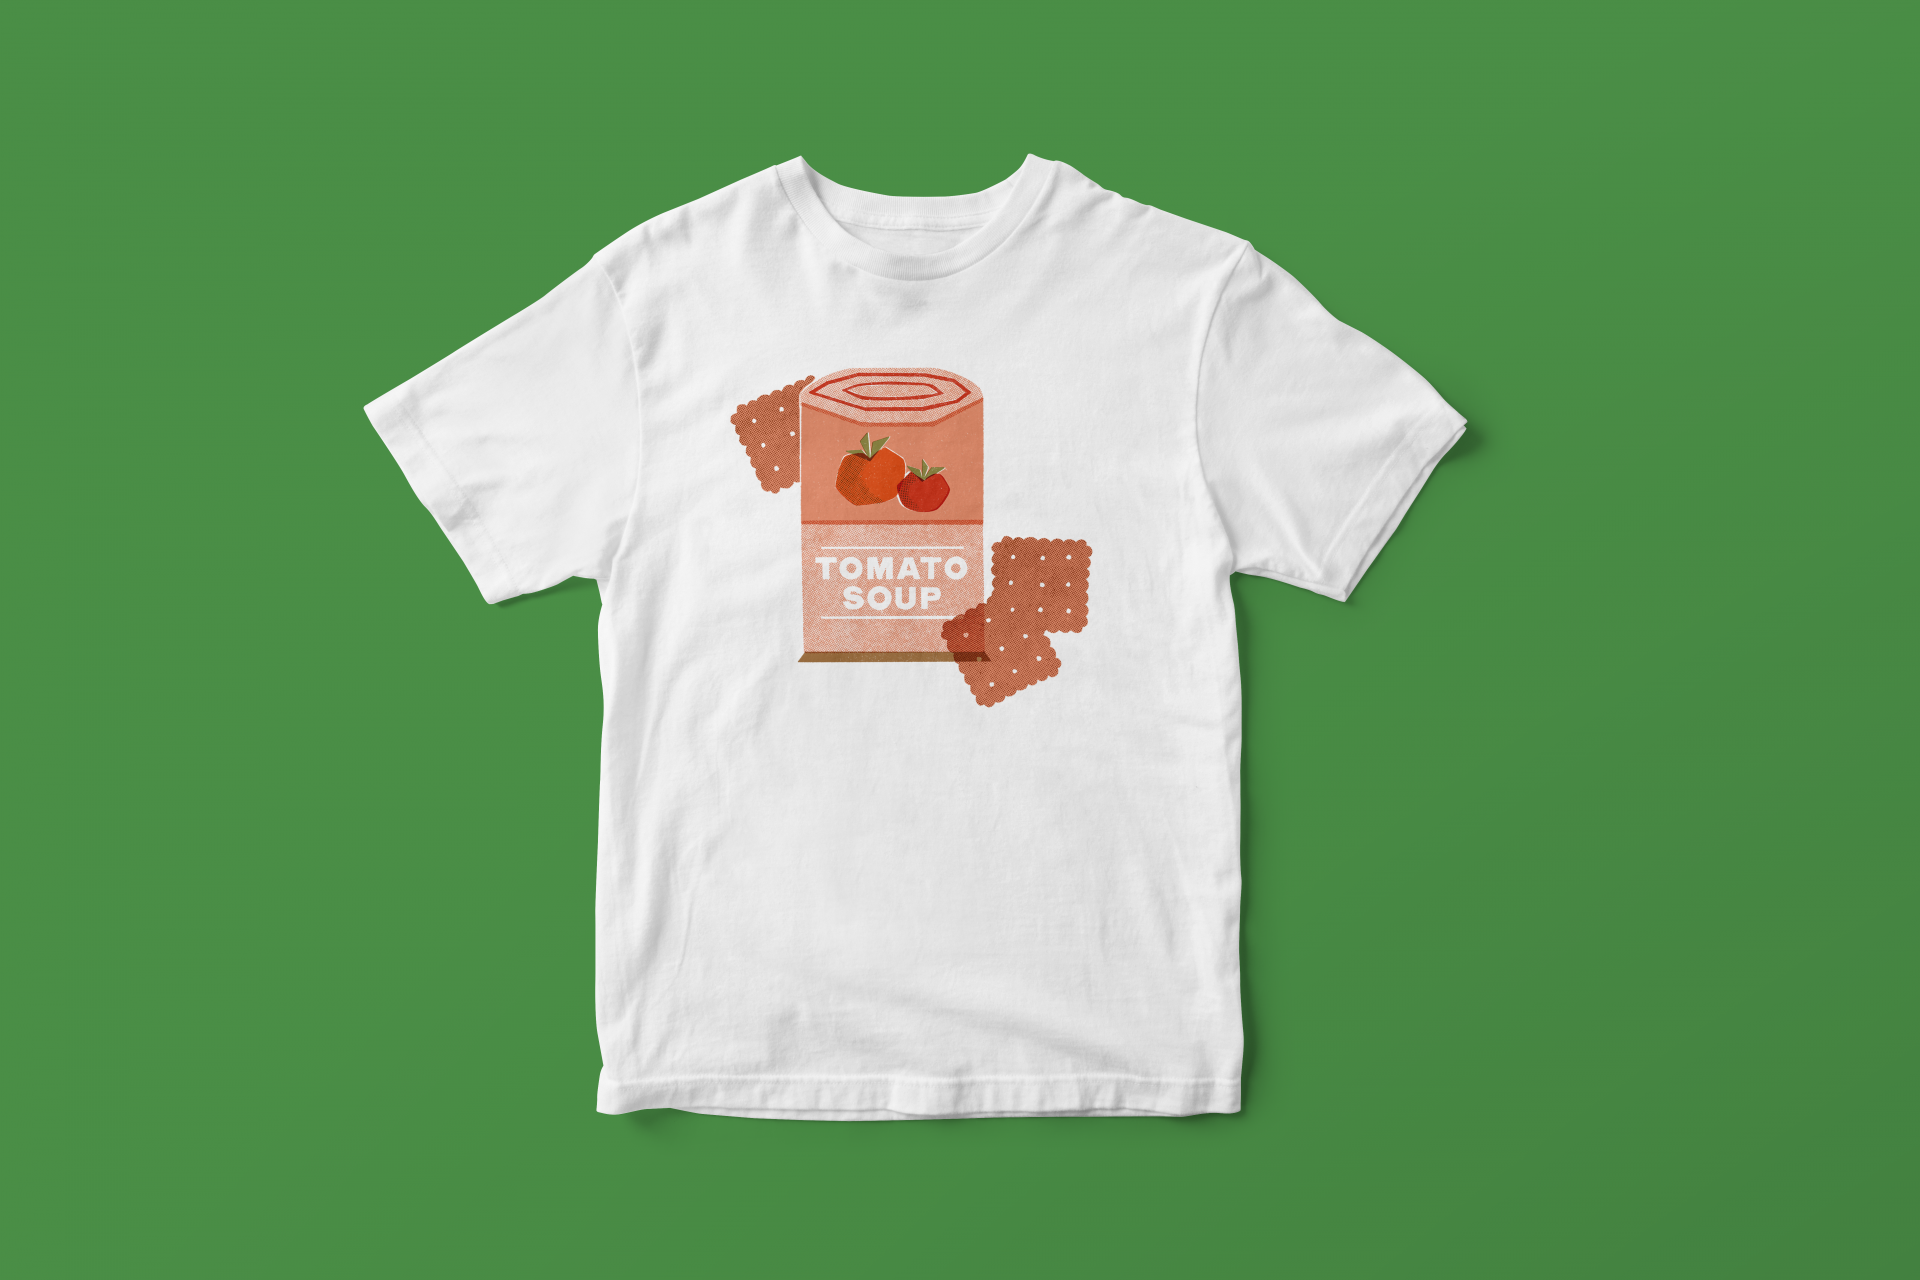 A white t-shirt with an illustration of tomato soup from the book, Alphabet Soup.